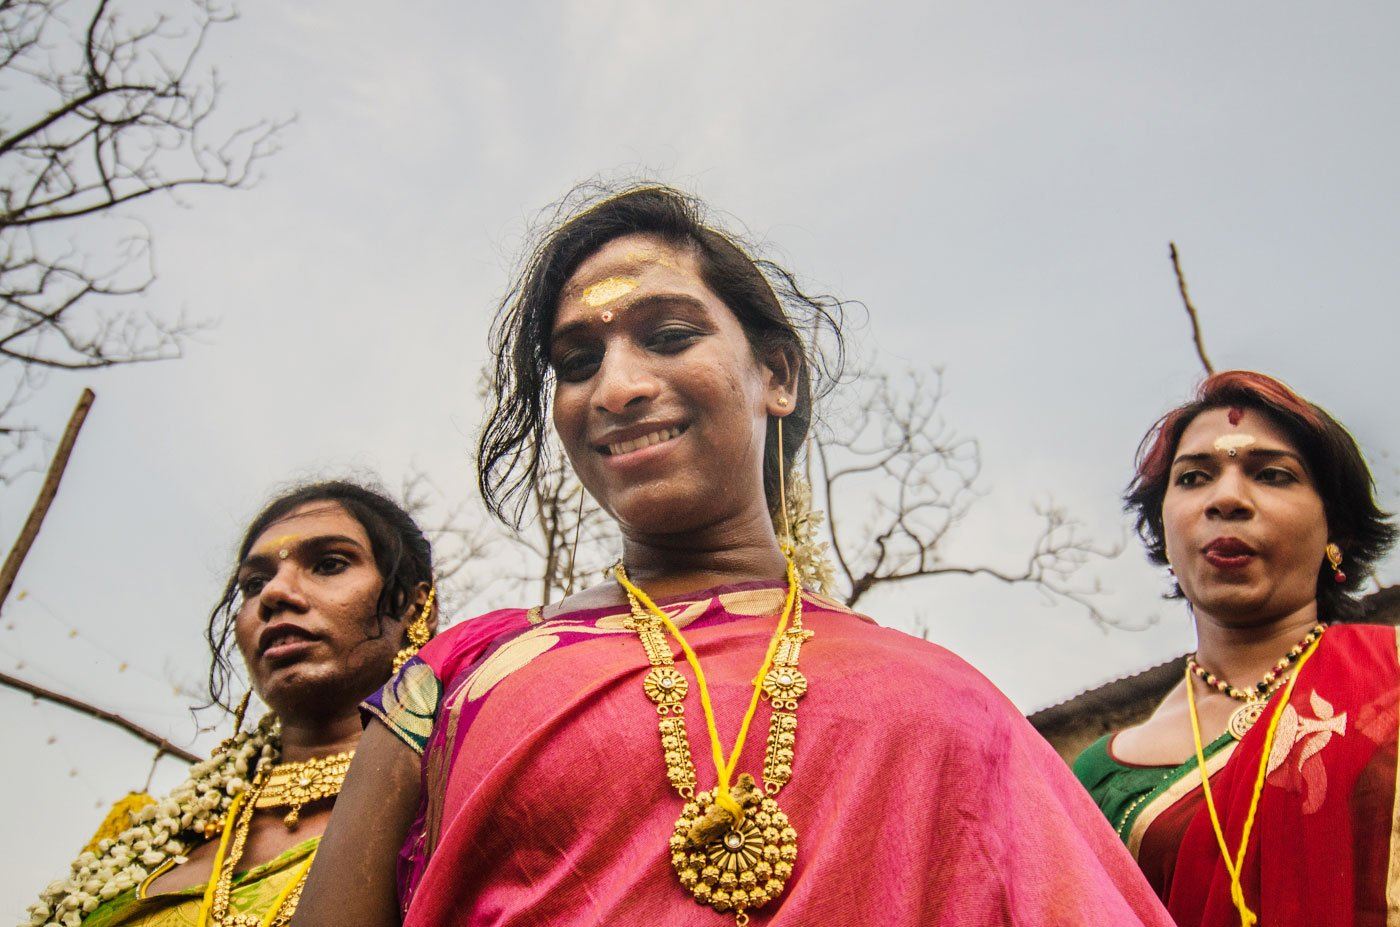 Pinky (centre), the leader of a group of newly-wed aravanis from the outskirts of Chennai, is thrilled to be married. A portrait of three transgender women